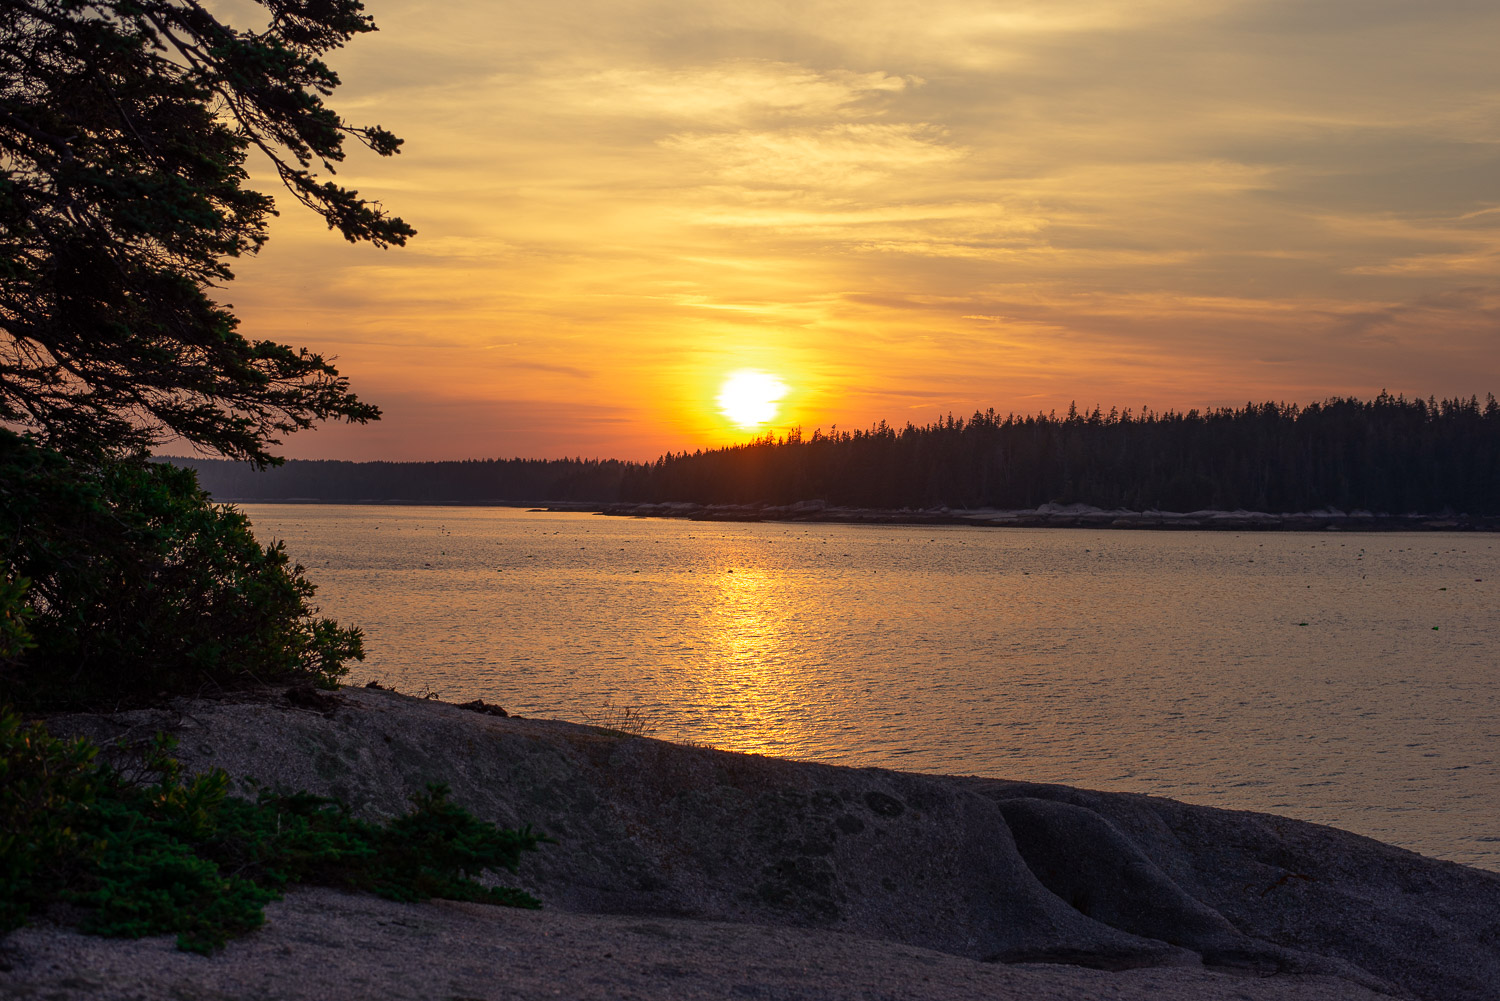 Three Day Trips - Enjoy three days and two nights of sea kayaking and rustic camping on the Maine Island Trail. Swim, sunbathe, and explore on islands accessible only to small boats before falling asleep listening to the sounds of the ocean.